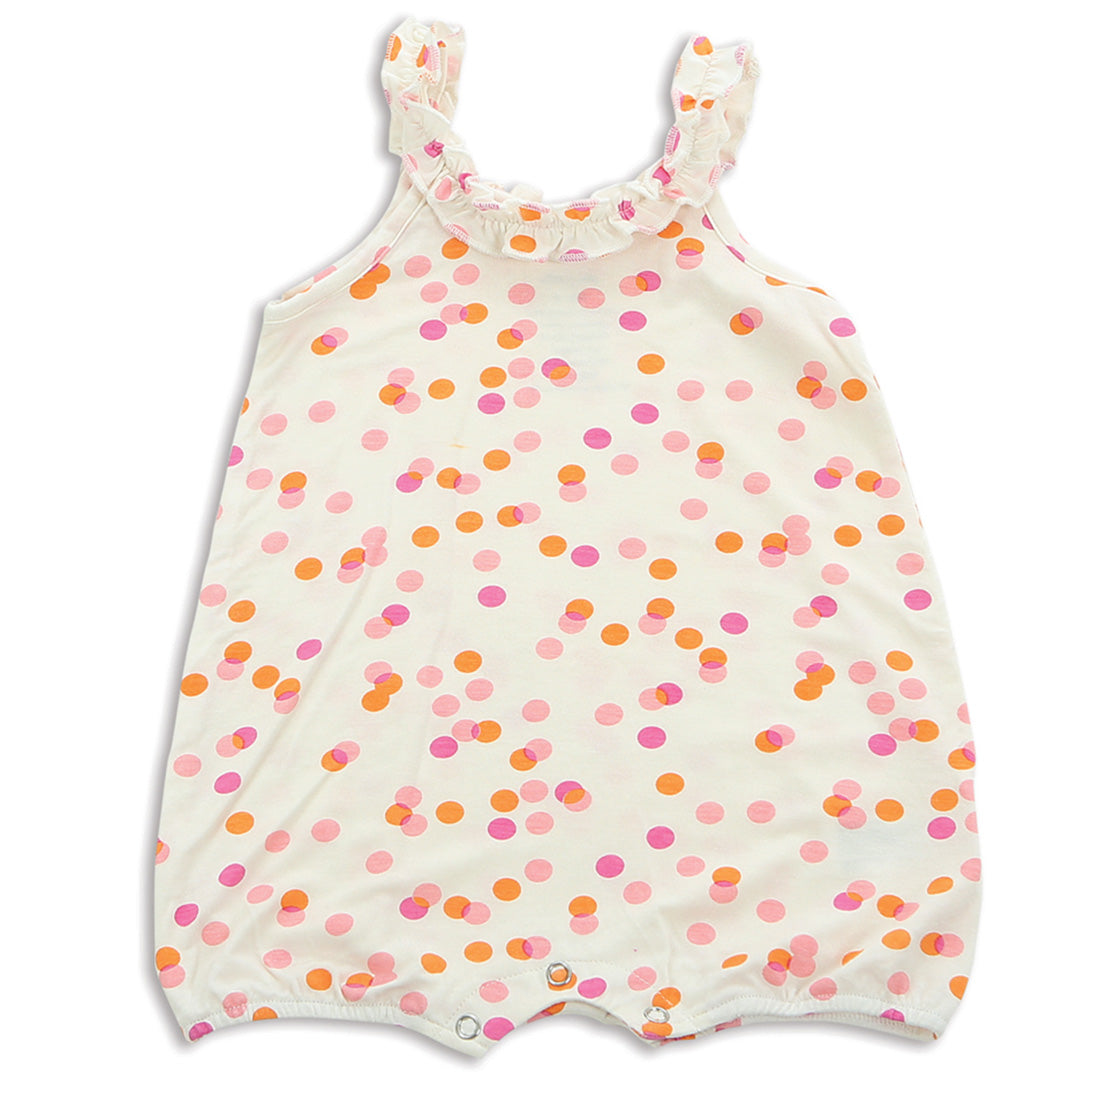 Silkberry Baby Bamboo Ruffle Romper - Confetti Sprinkles